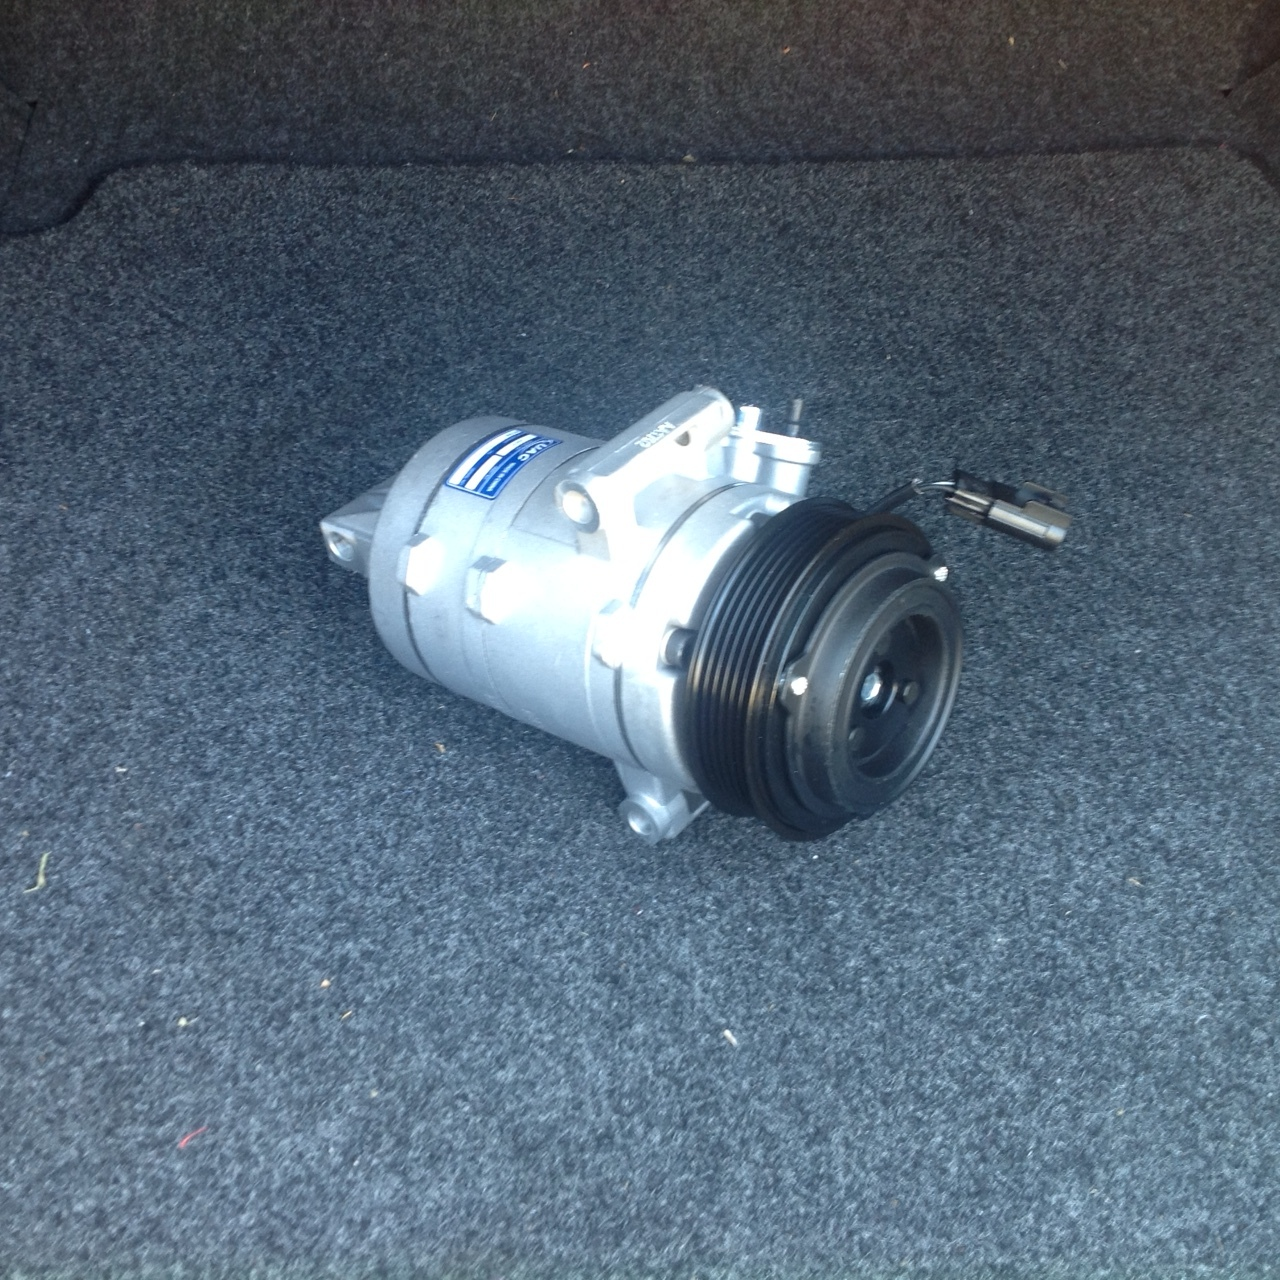 2010-12 Ford Fusion 3.5 Auto AC Air Conditioning Compressor Replacement w Clutch